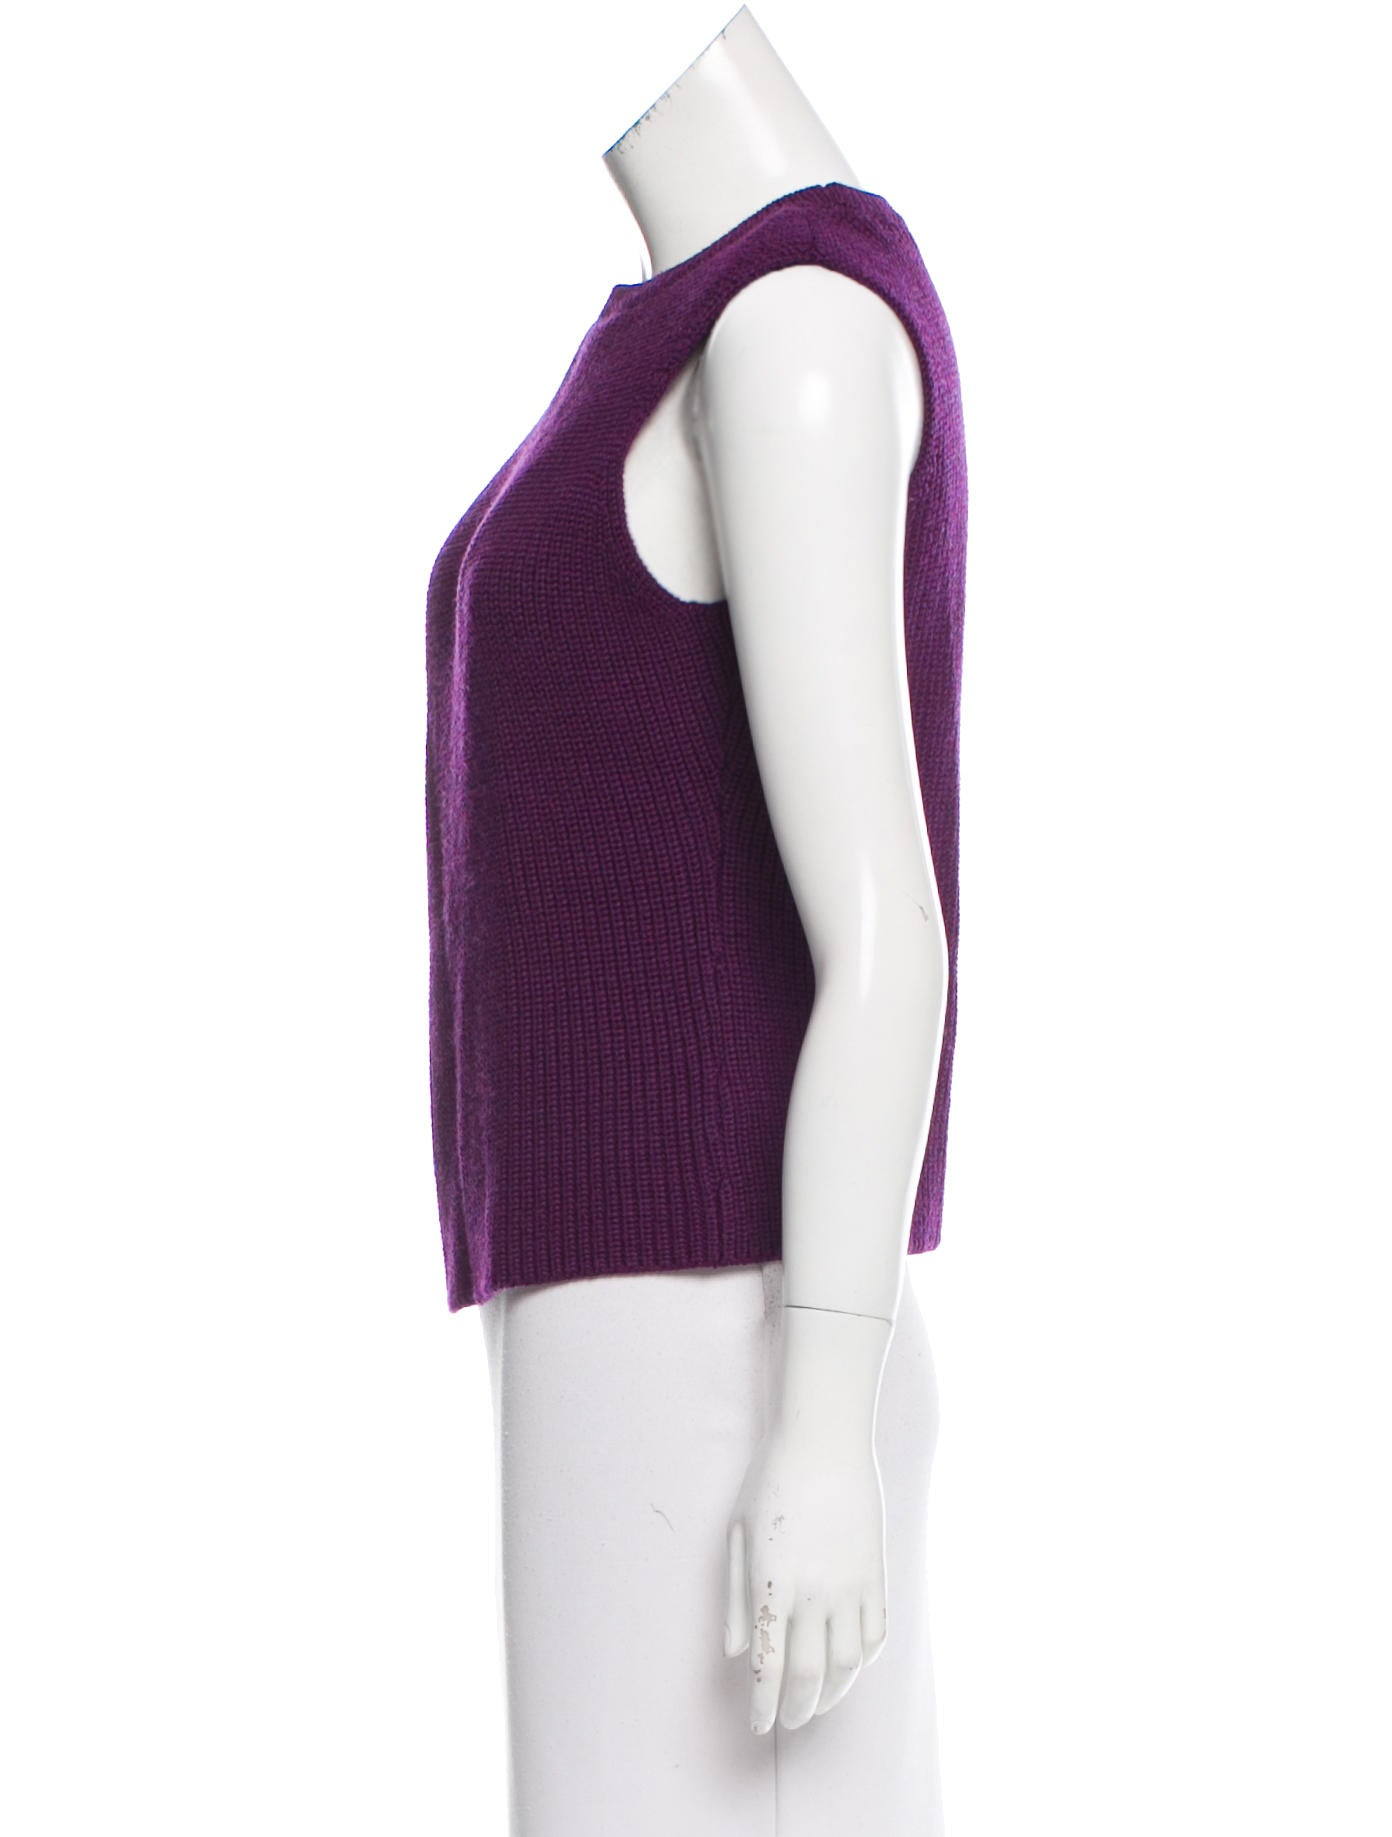 Carven wool cable knit top clothing cav26526 the for Best wool shirt jackets